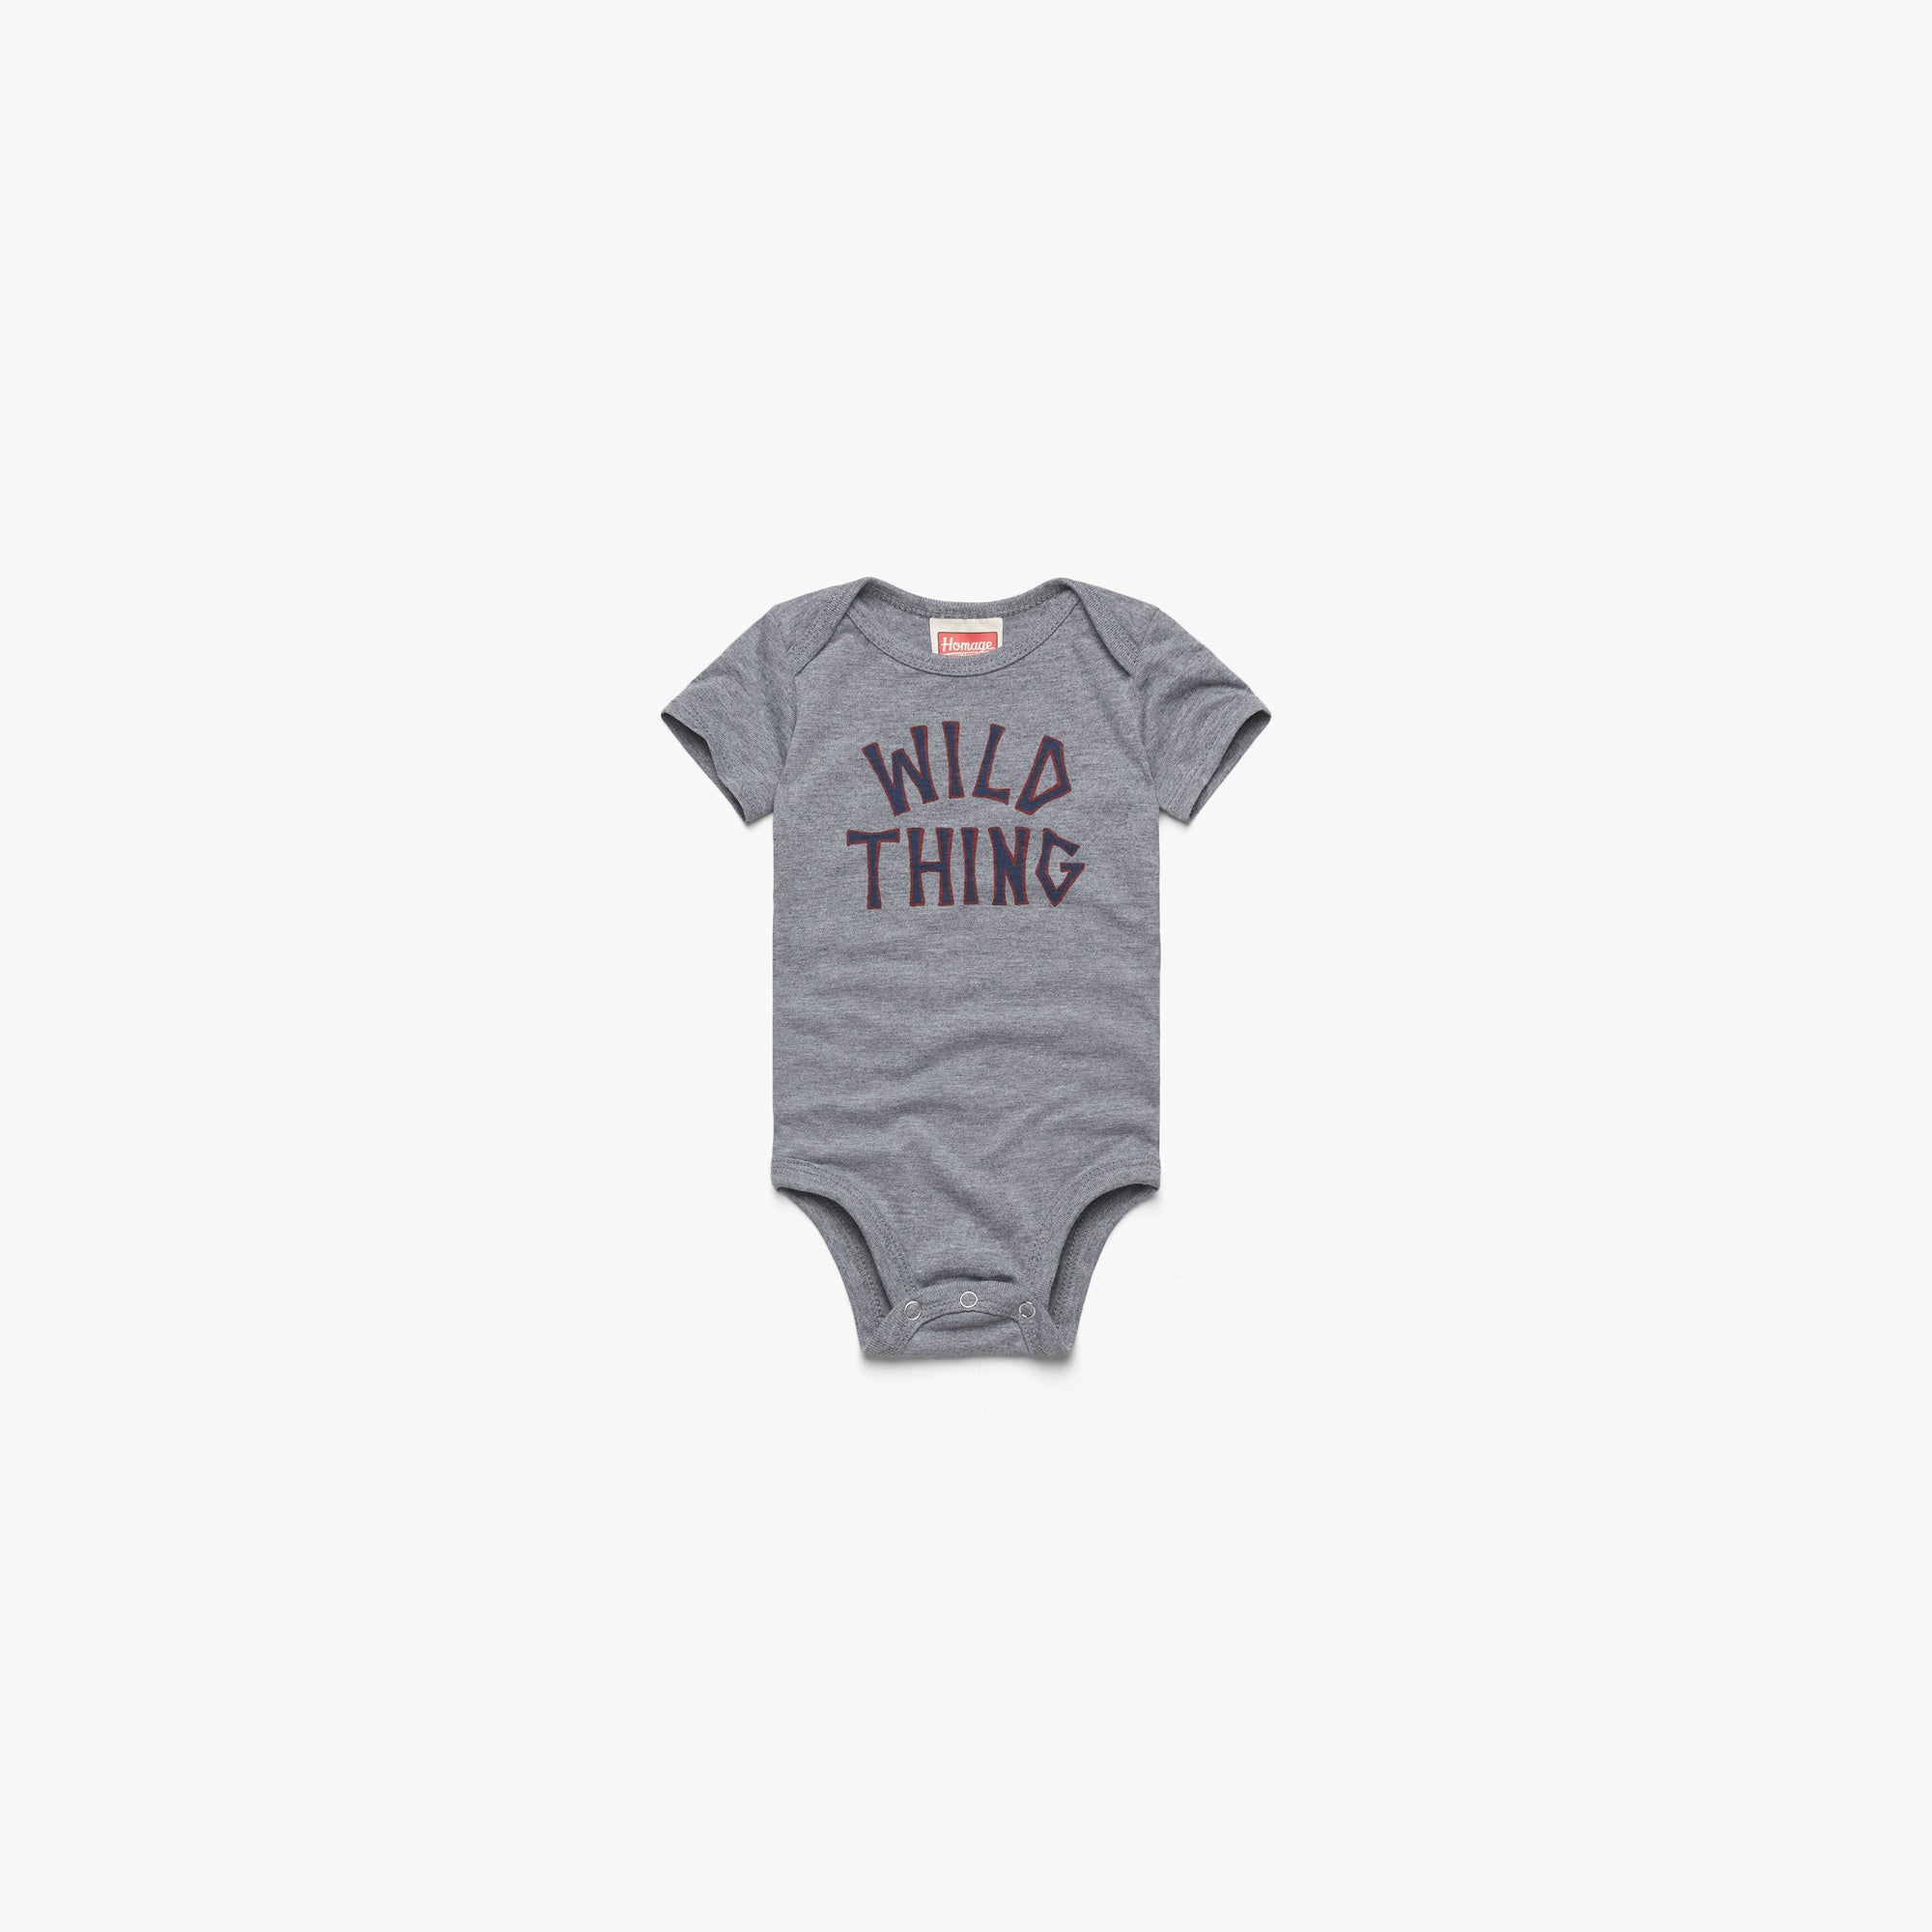 Wild Thing Baby One Piece